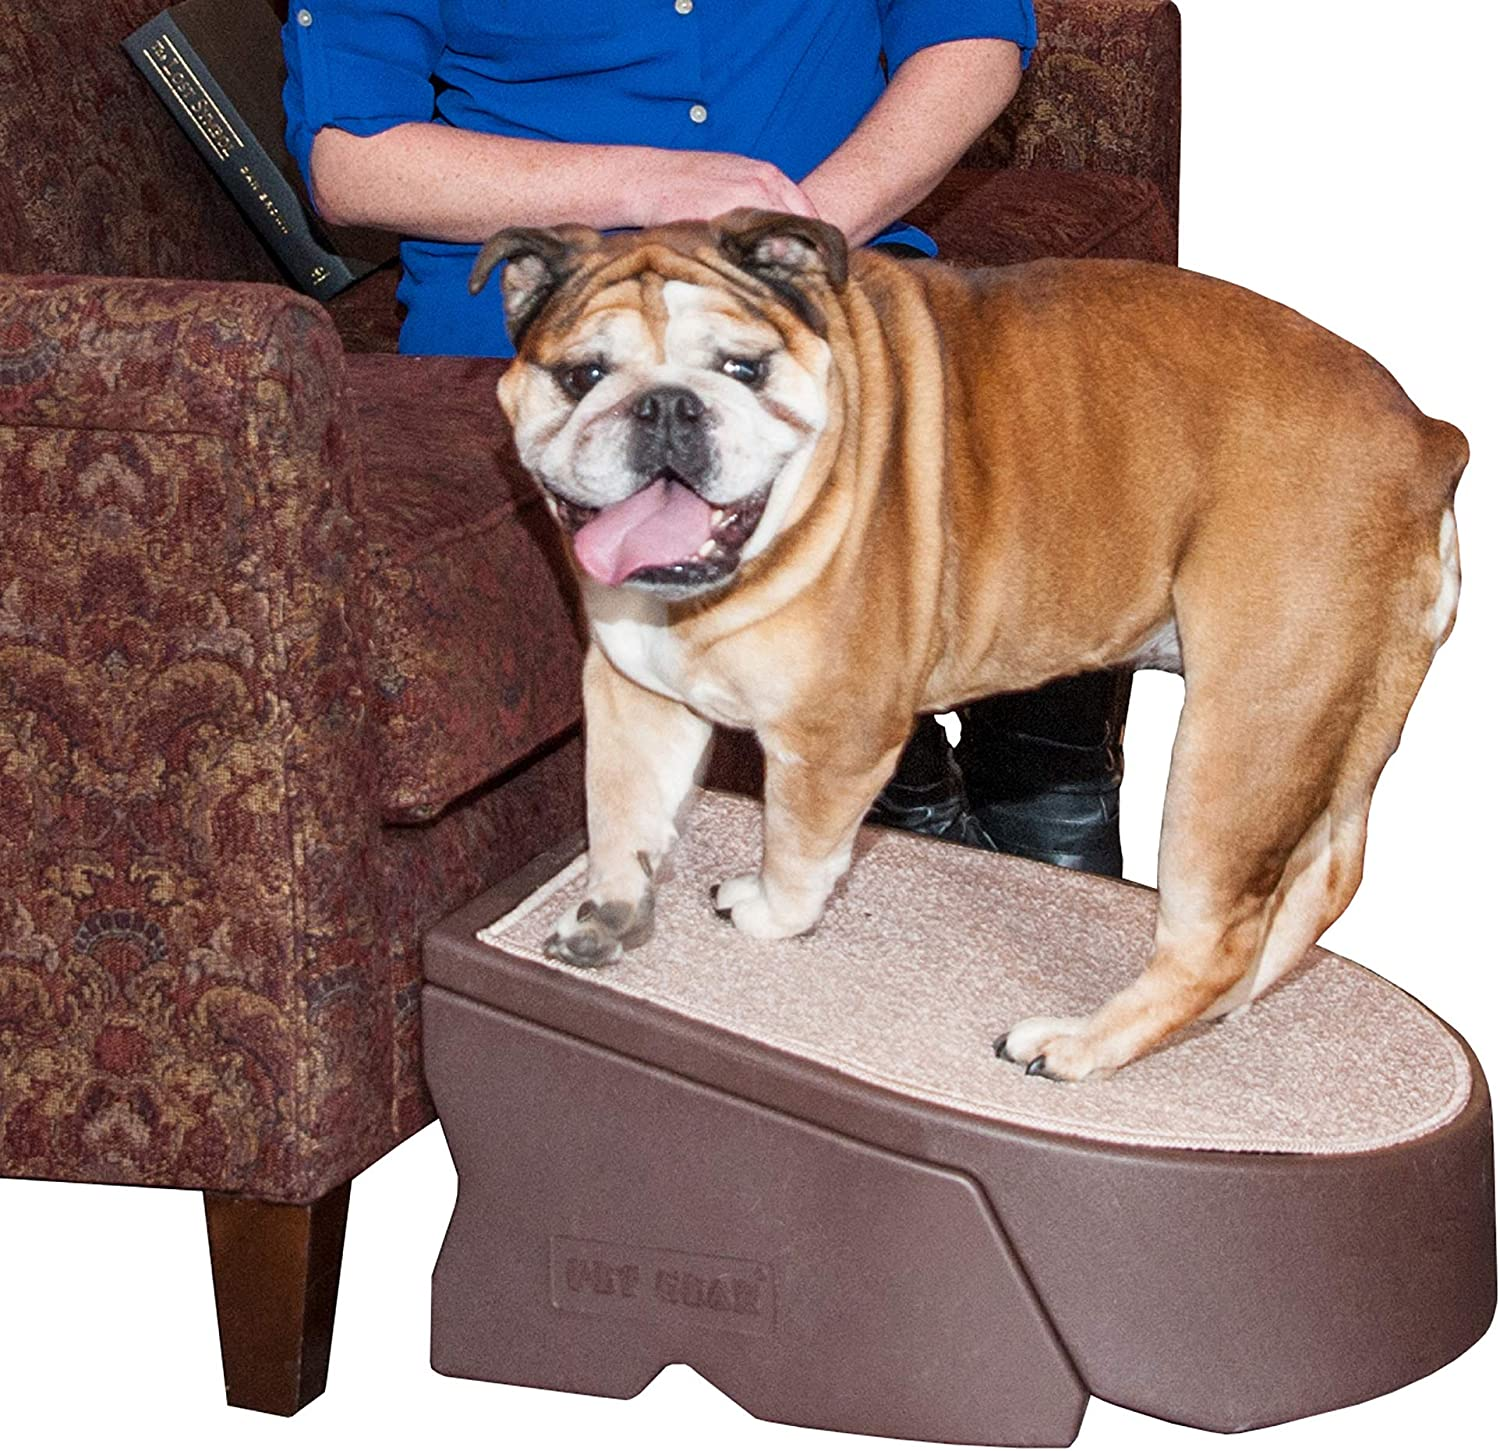 Pet Gear Stramp Stair and Ramp Combination, Dog/Cat Easy Step, Lightweight/Portable, Sturdy, Extra Wide, Gentler Sloped : Pet Supplies